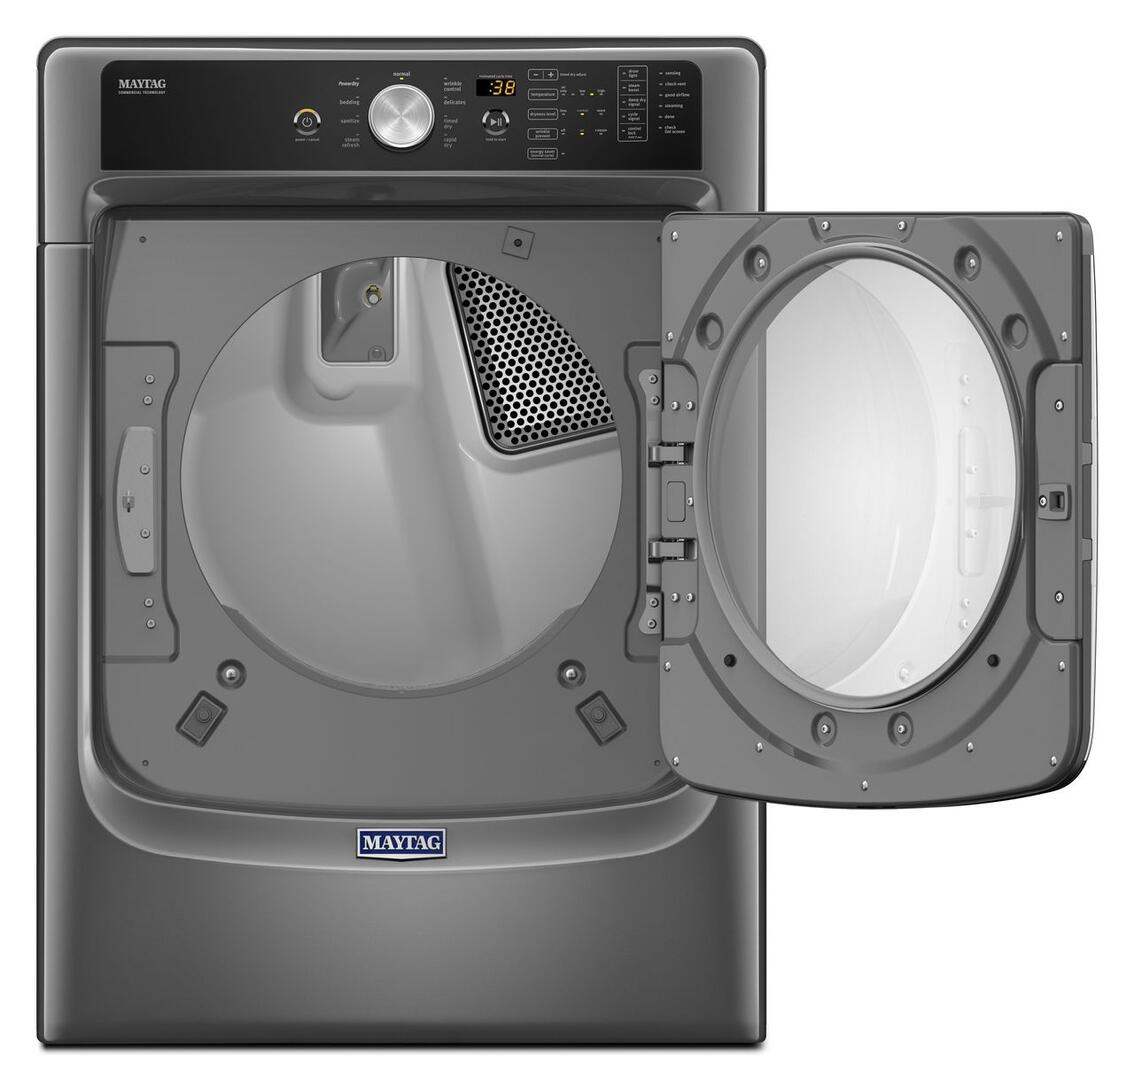 Maytag Med5500fw 27 Inch White 74 Cu Ft Electric Dryer Rapid Wiring Diagram For Stand Next